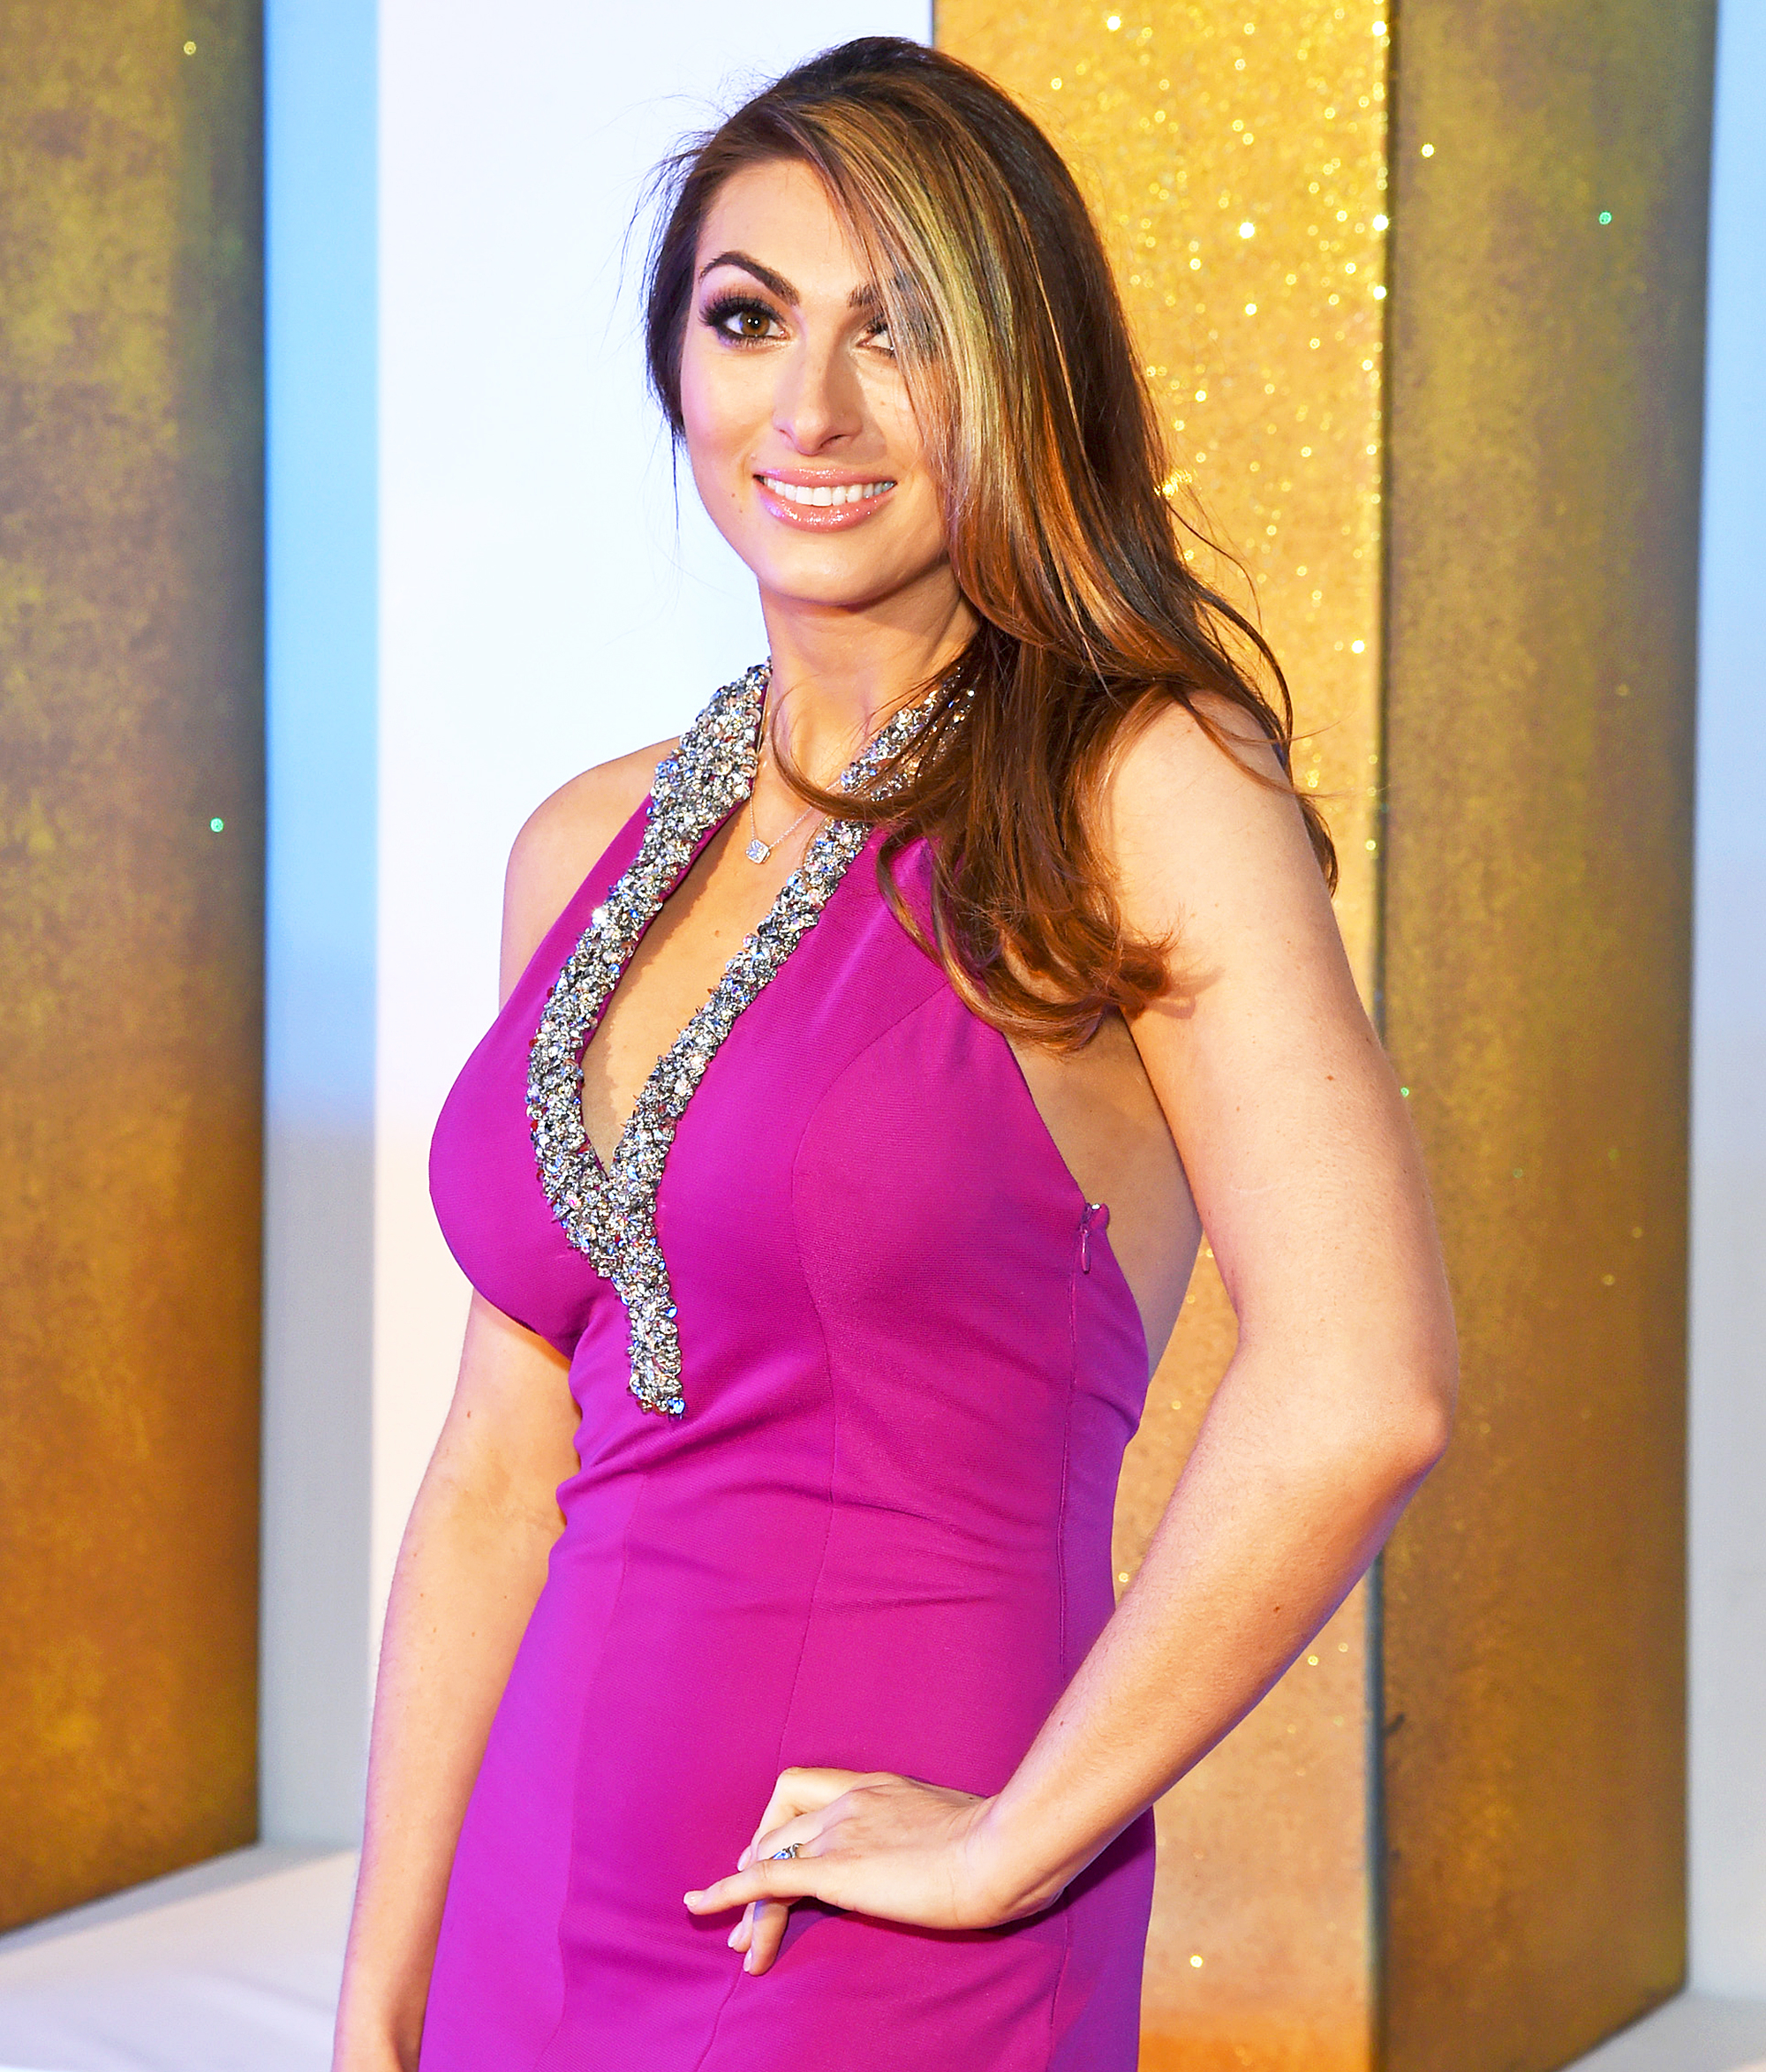 Reality Star Admits She Hates Being Pregnant